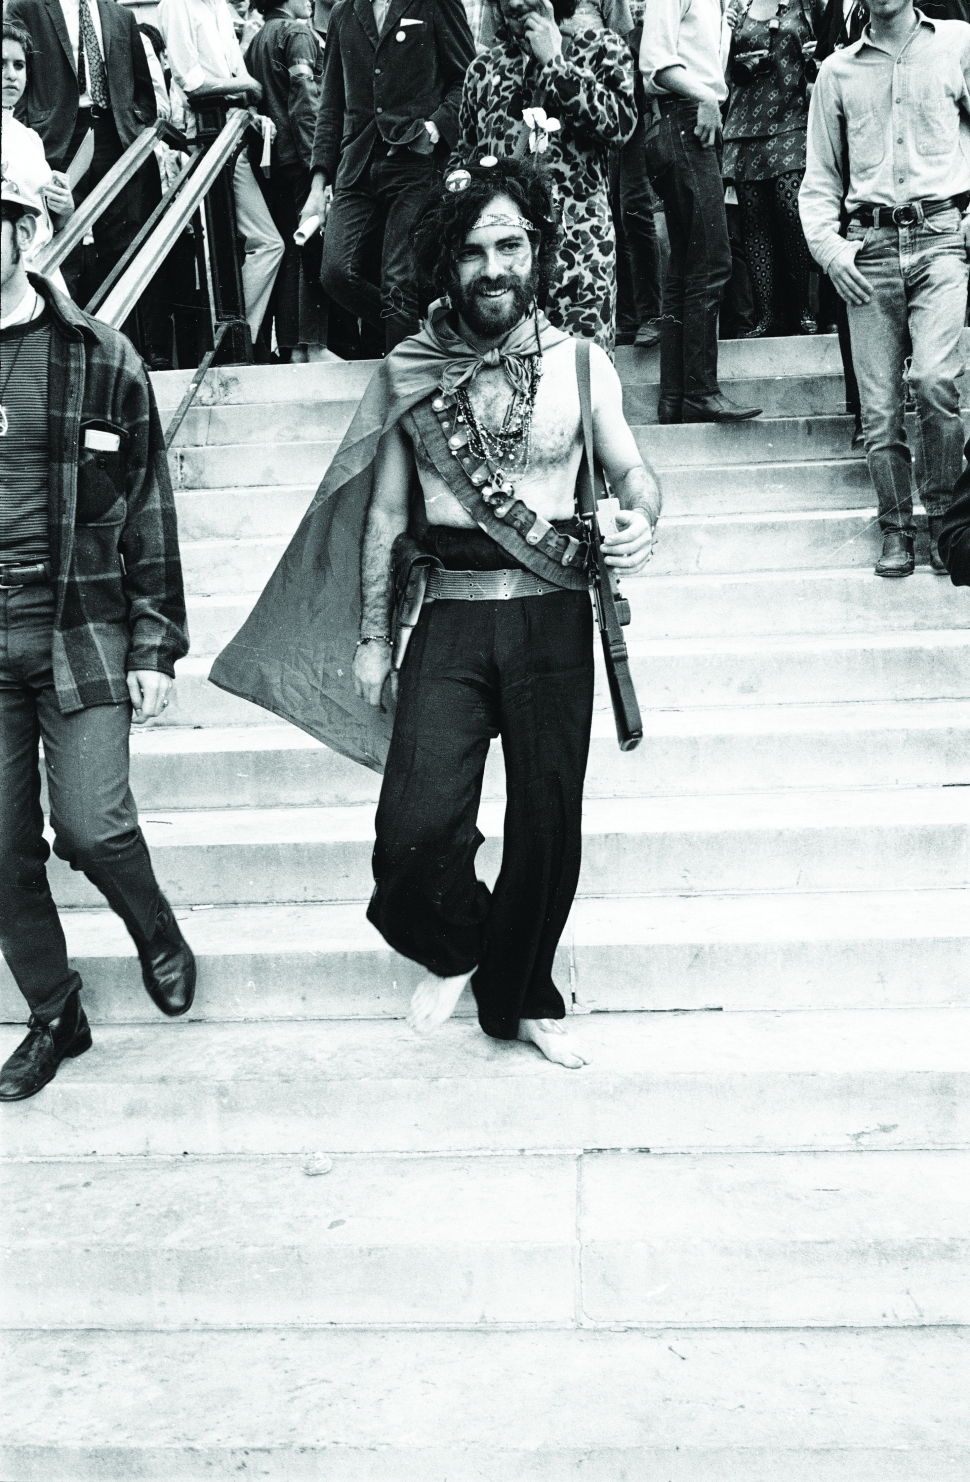 Jerry Rubin smiles as he walks down the steps barefoot outside the 1968 Democratic National Convention. (Photo: Hulton Archive/Getty Images)